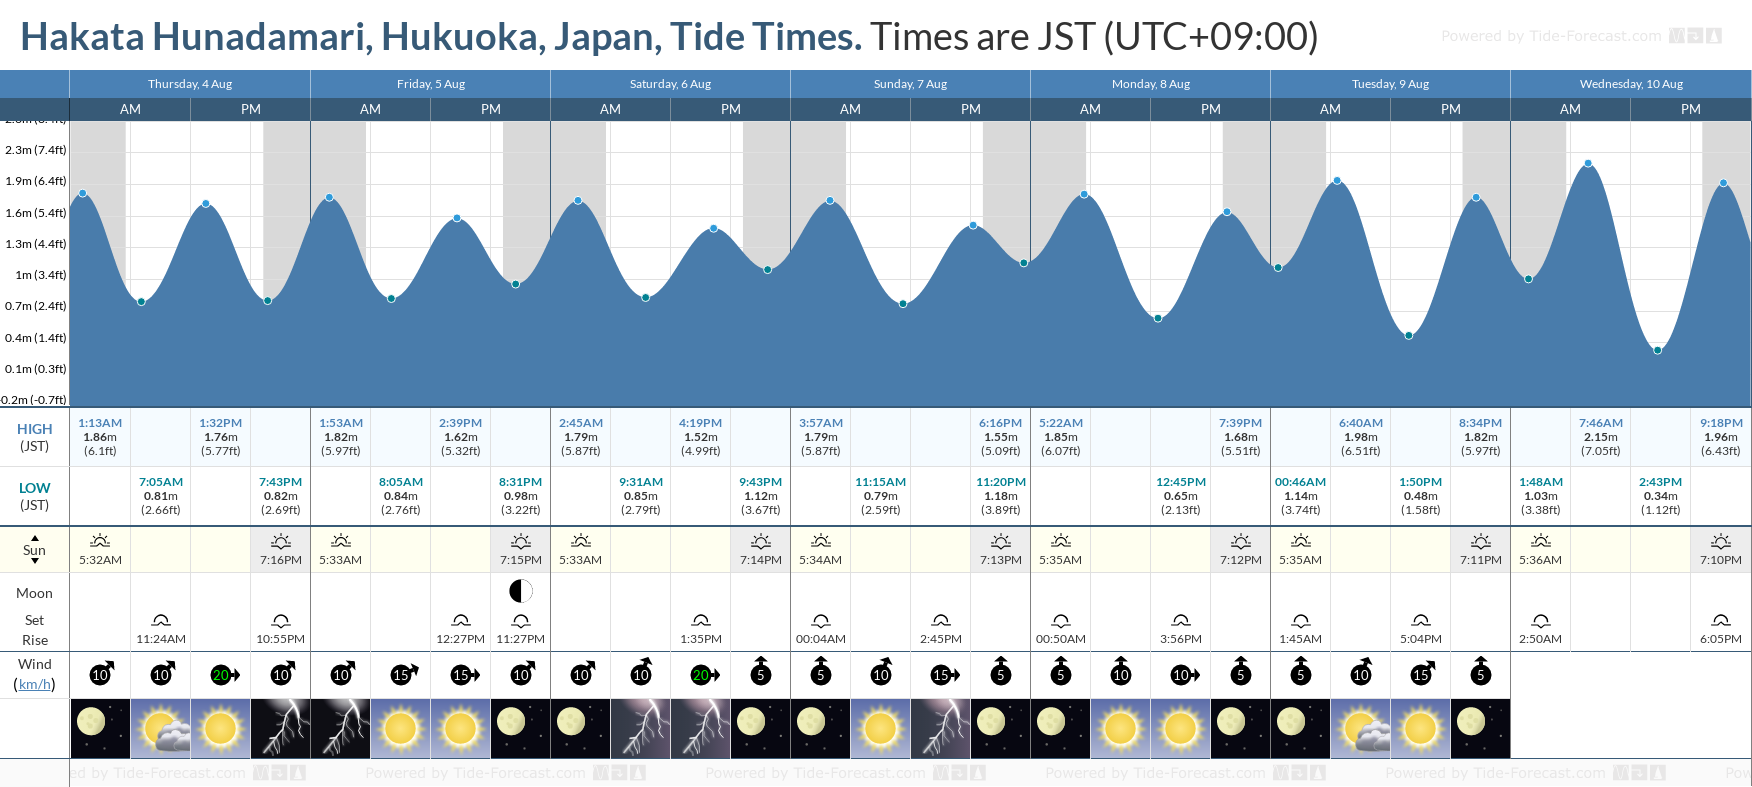 Hakata Hunadamari, Hukuoka, Japan Tide Chart including high and low tide tide times for the next 7 days